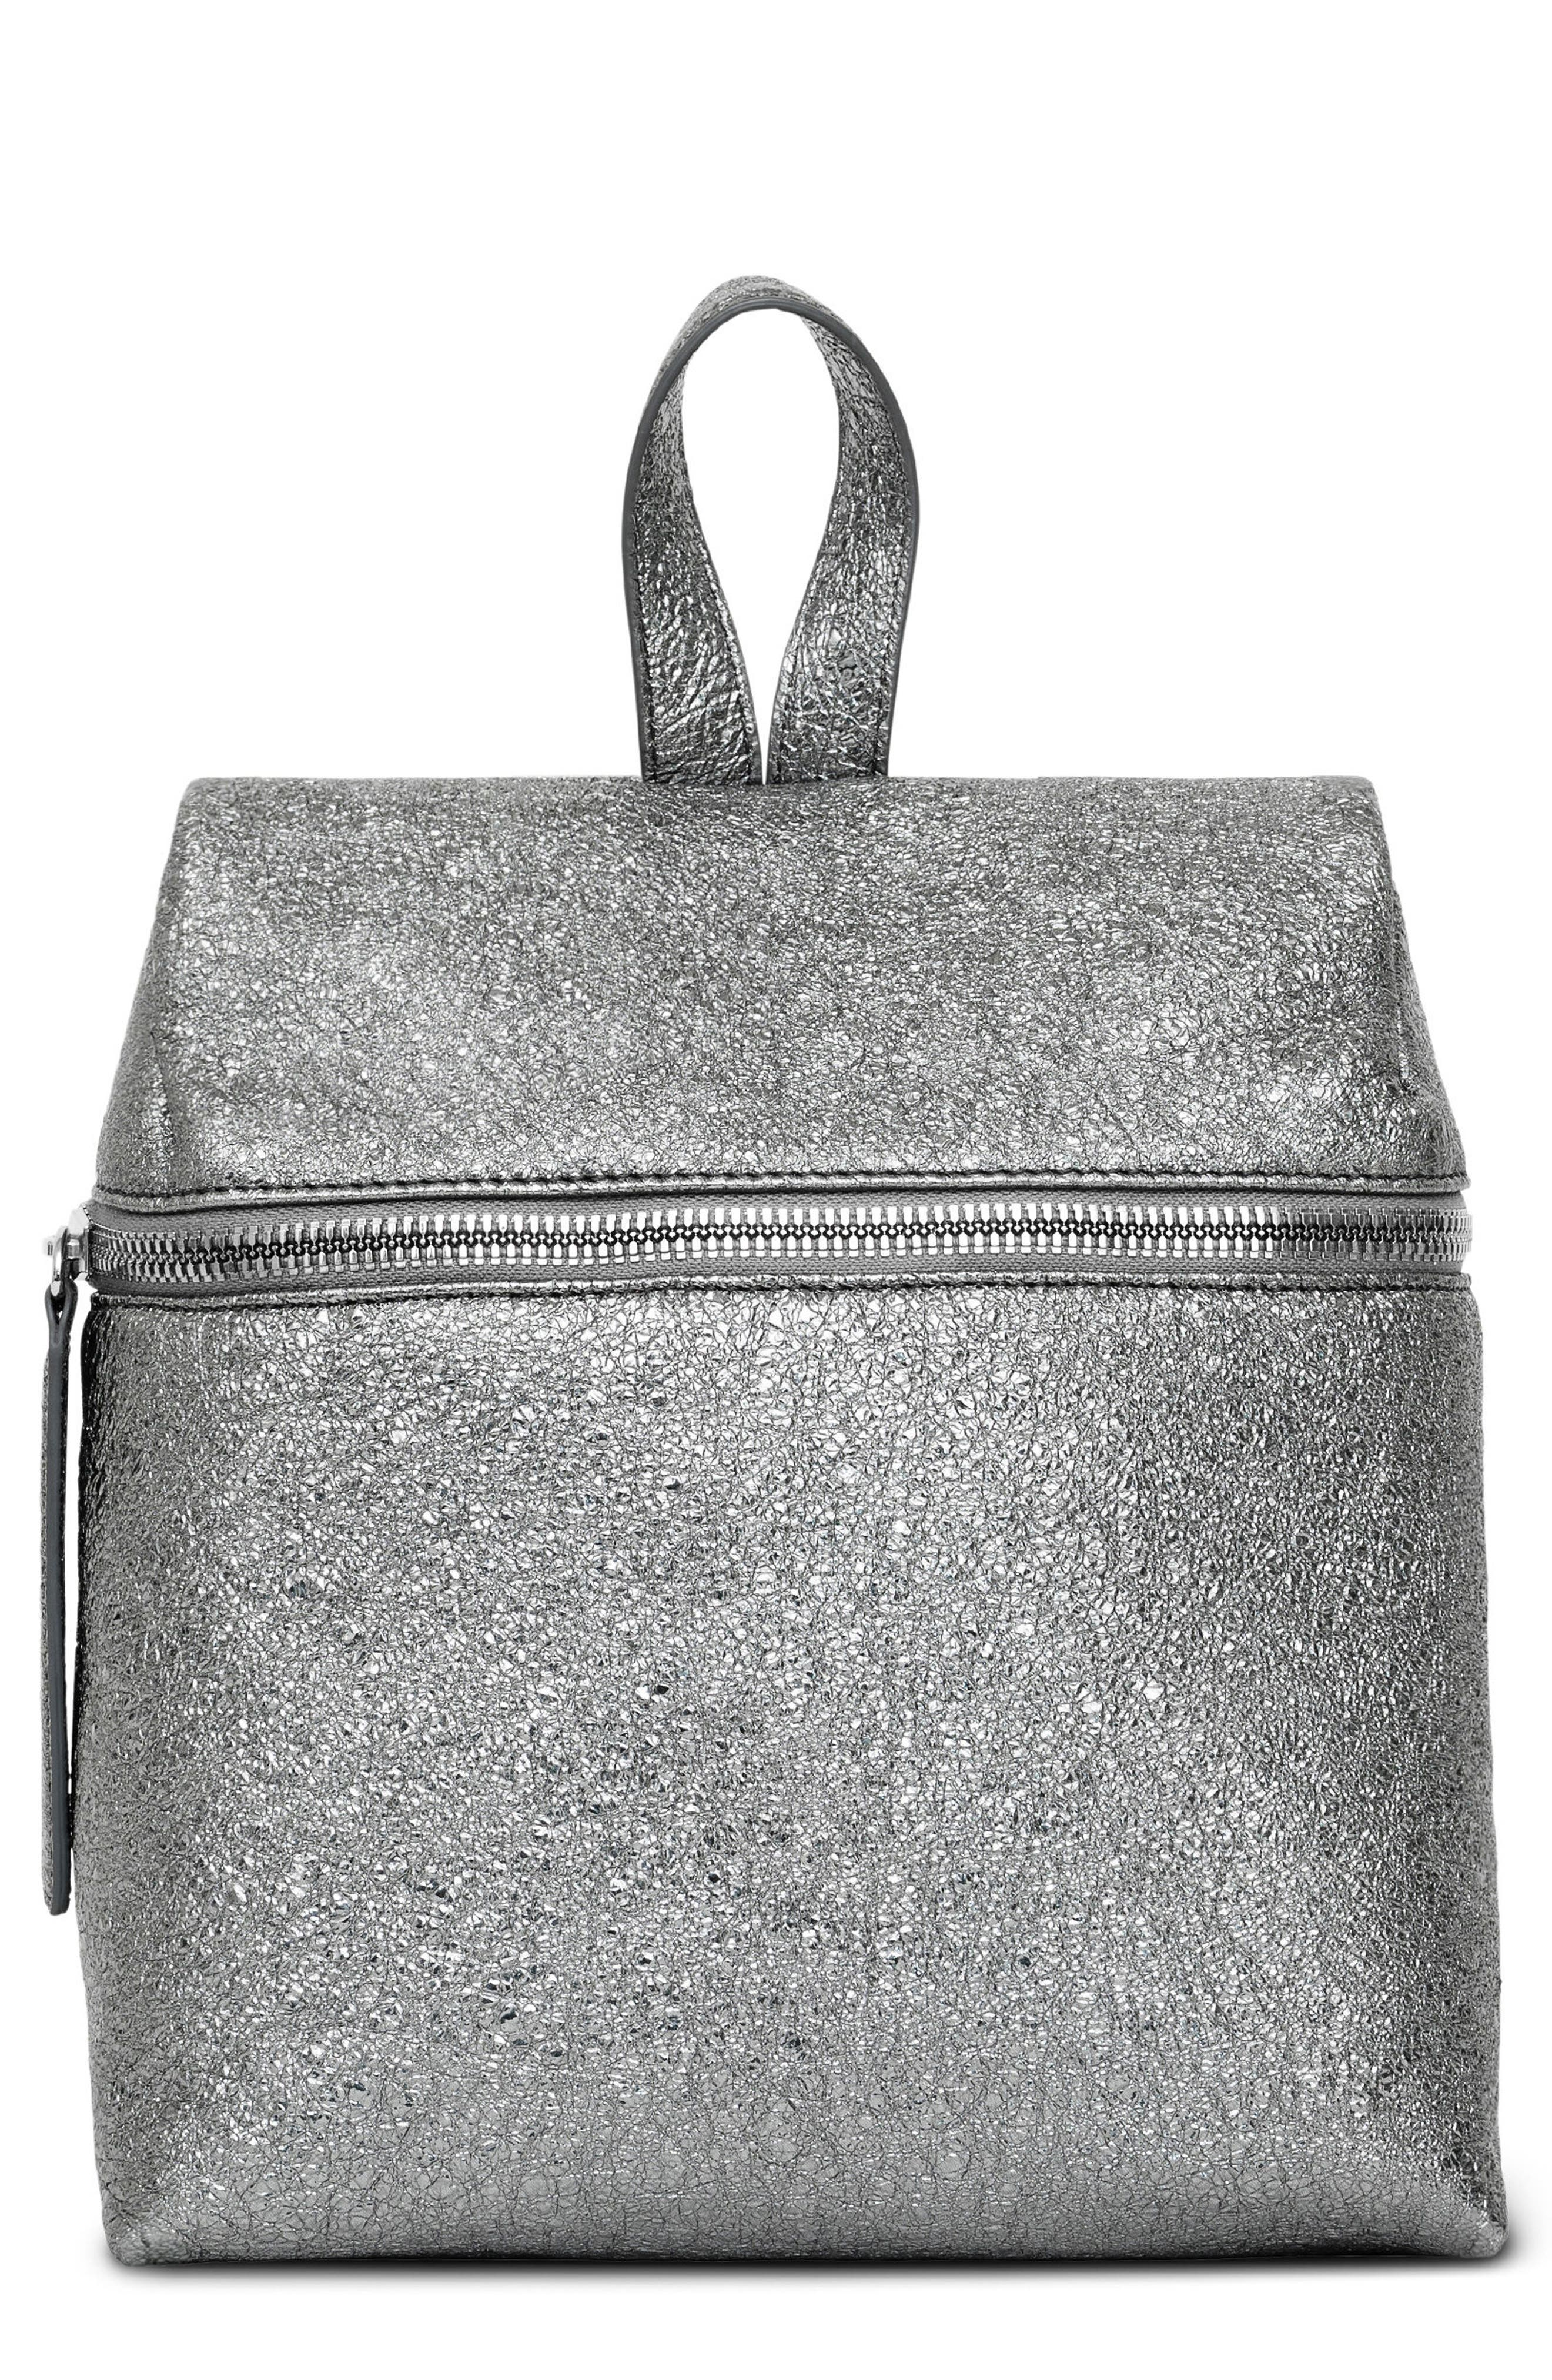 Alternate Image 1 Selected - KARA Small Crinkled Metallic Leather Backpack